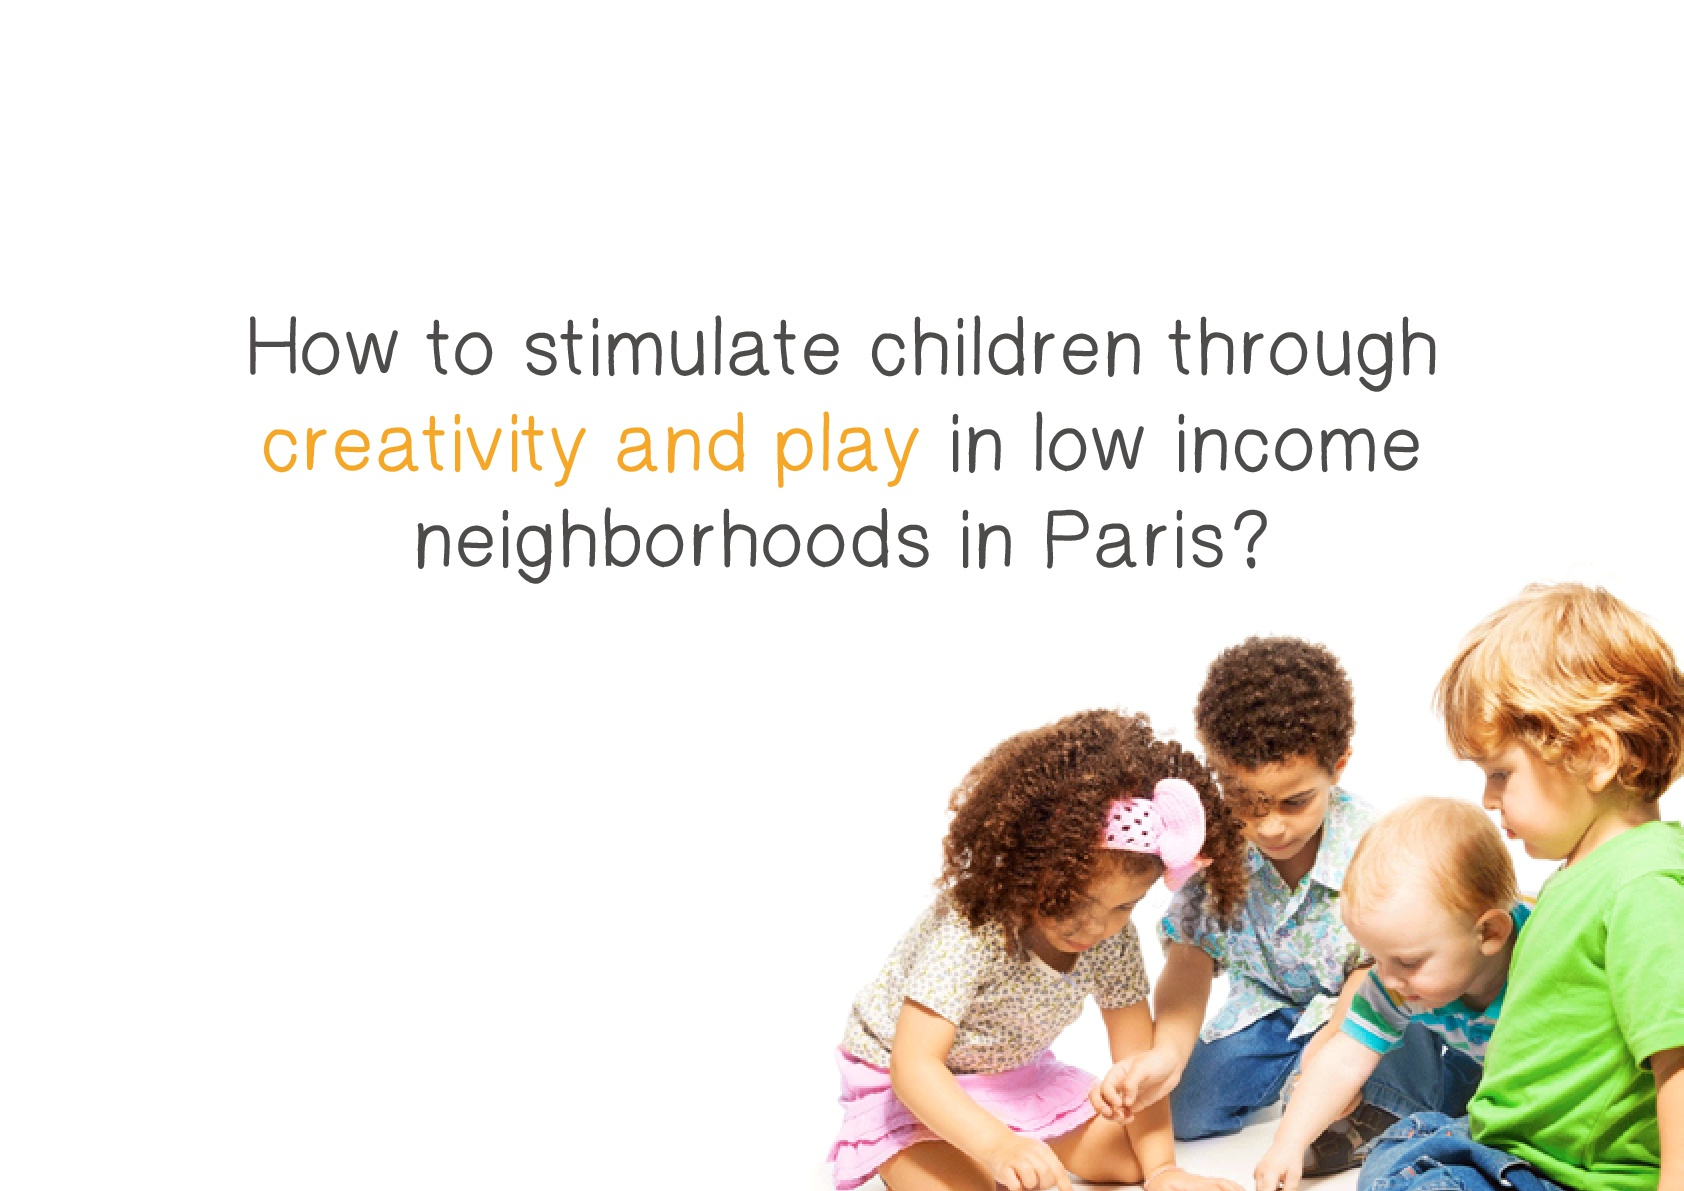 How we stimulate children through creativity & play